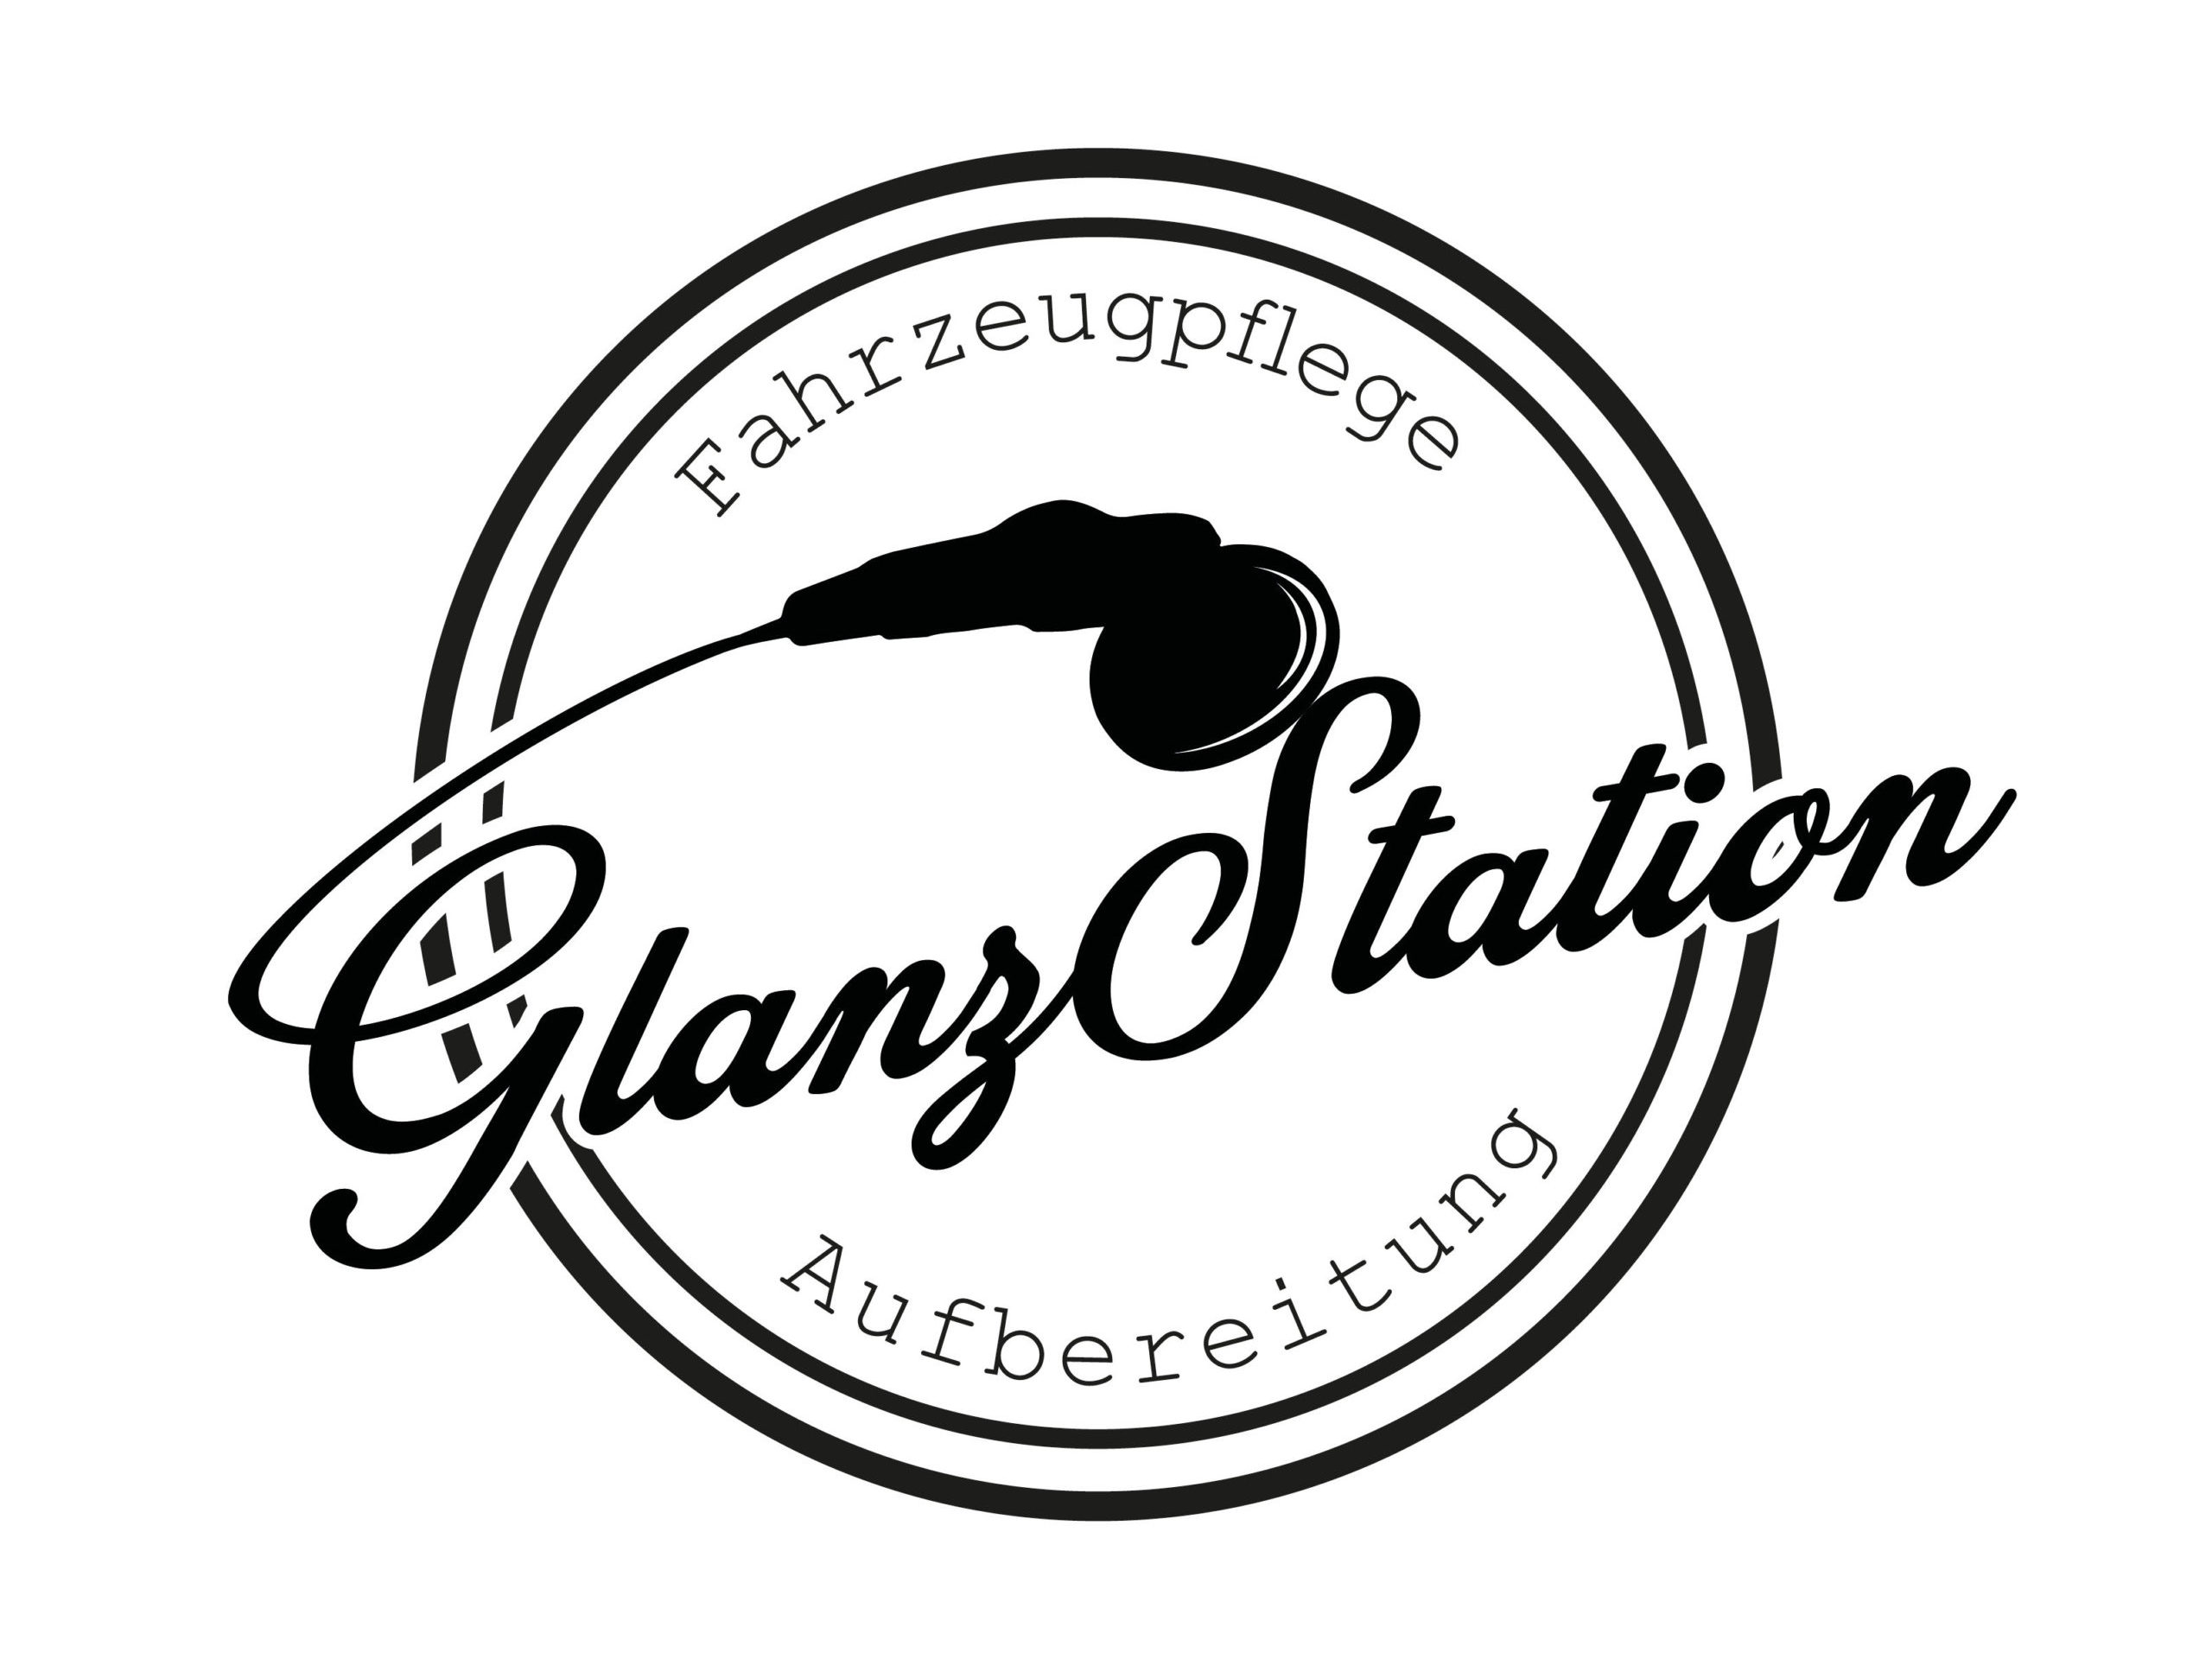 GlanzStation